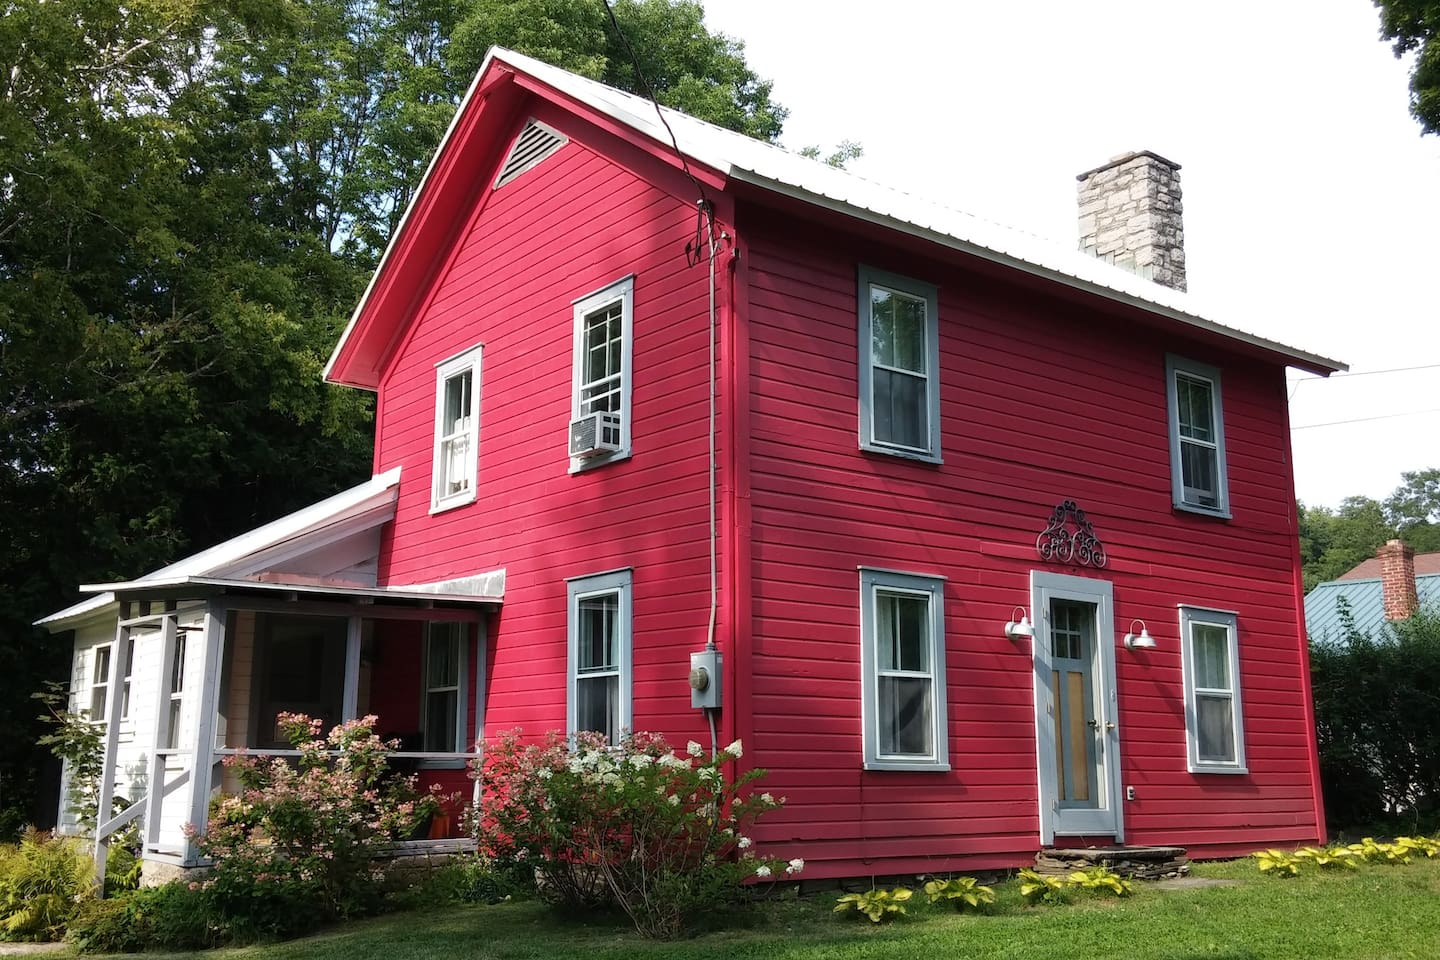 Charming Red Cottage, please come in...